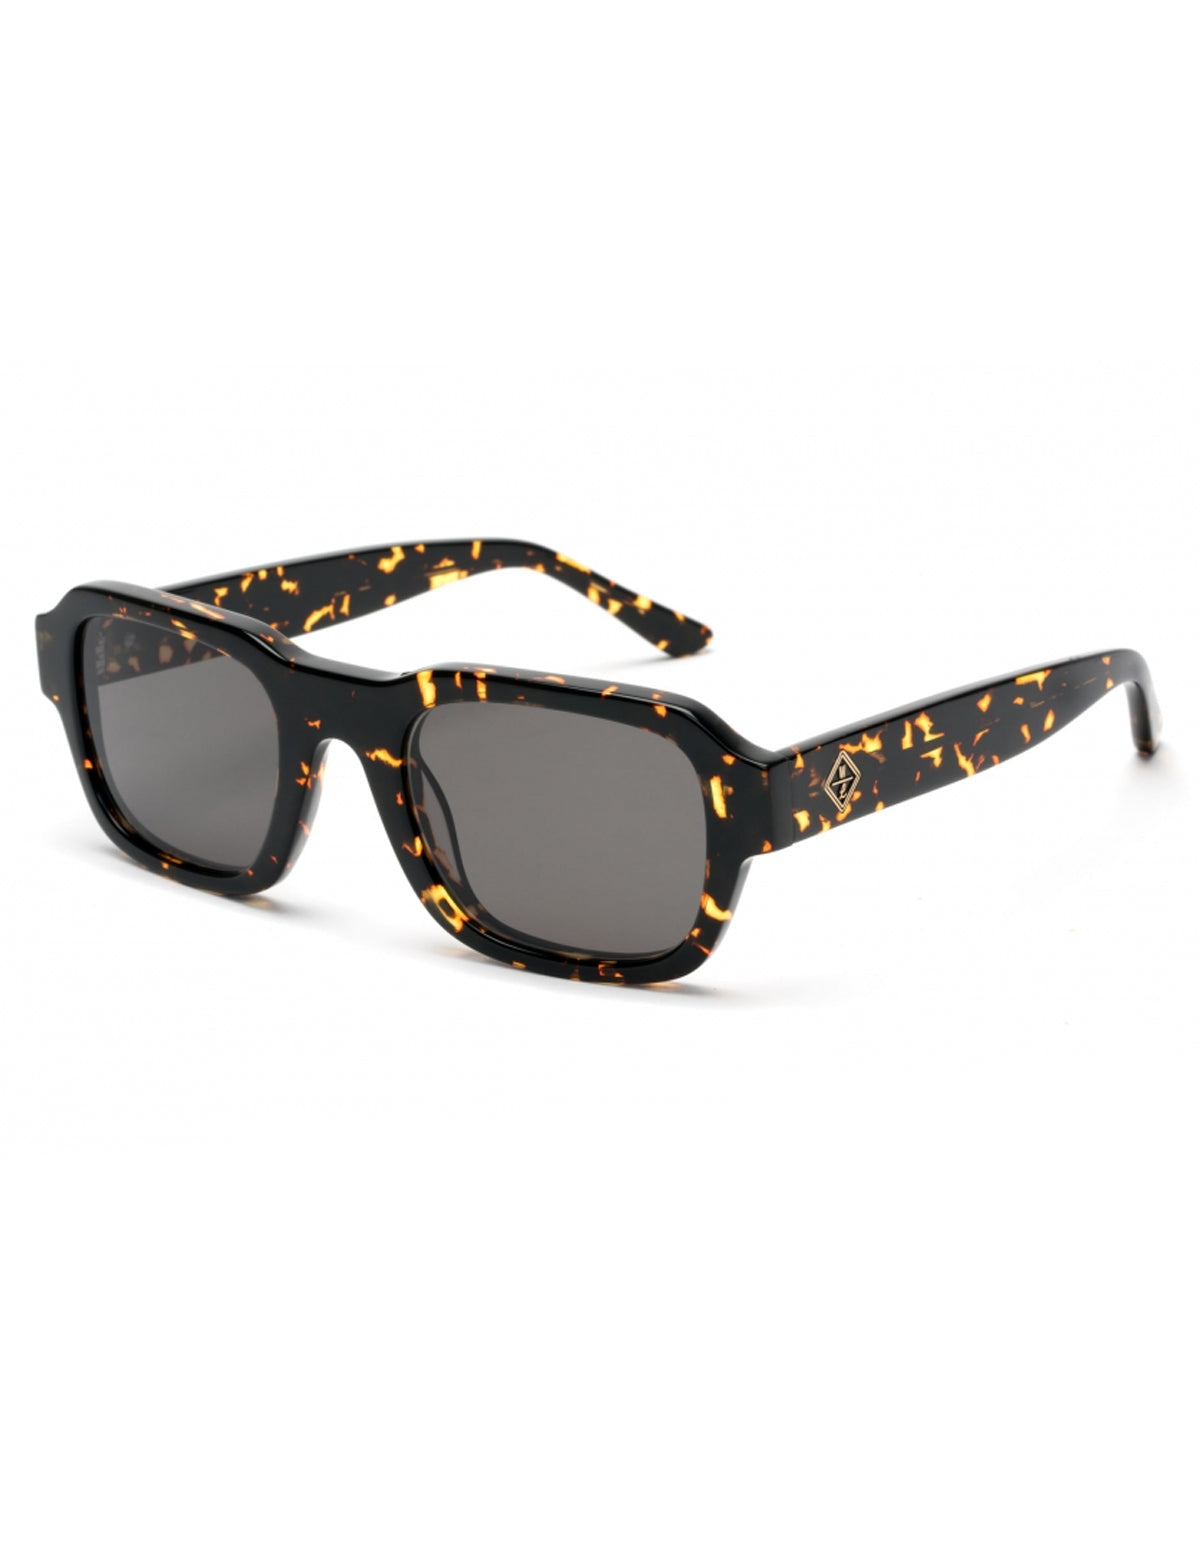 Wonderland Badlands Sunglasses, Yellow Tortoise, Green Carl Zeiss